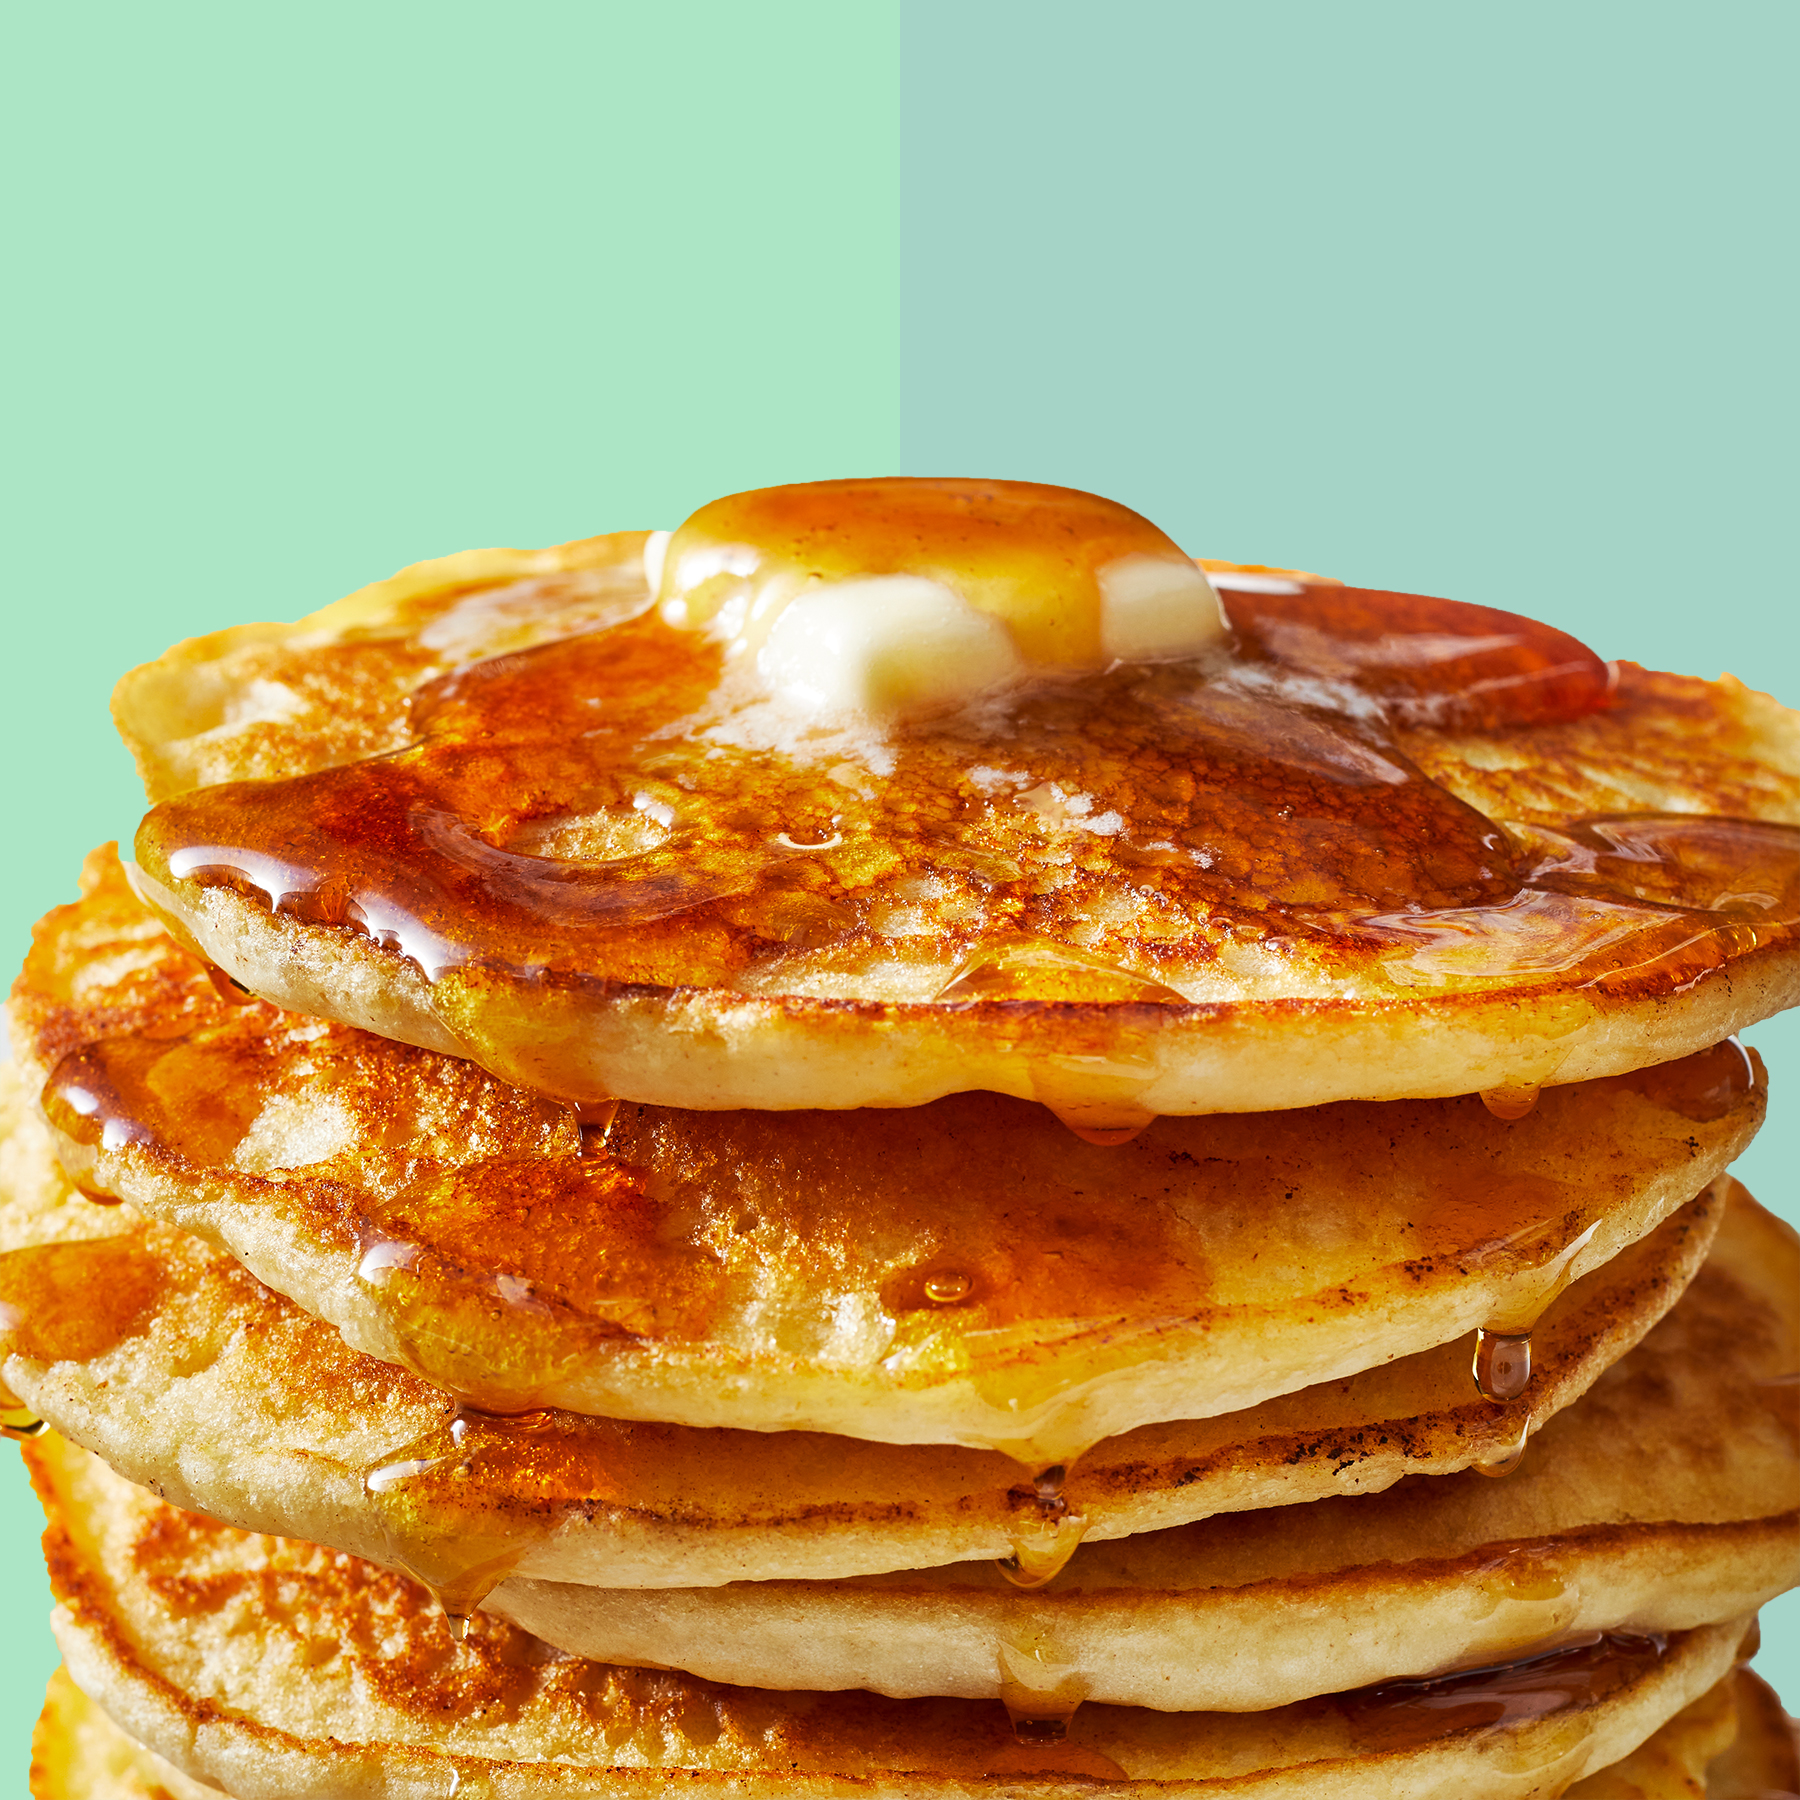 Best Pancake Mix: stack of pancakes with syrup